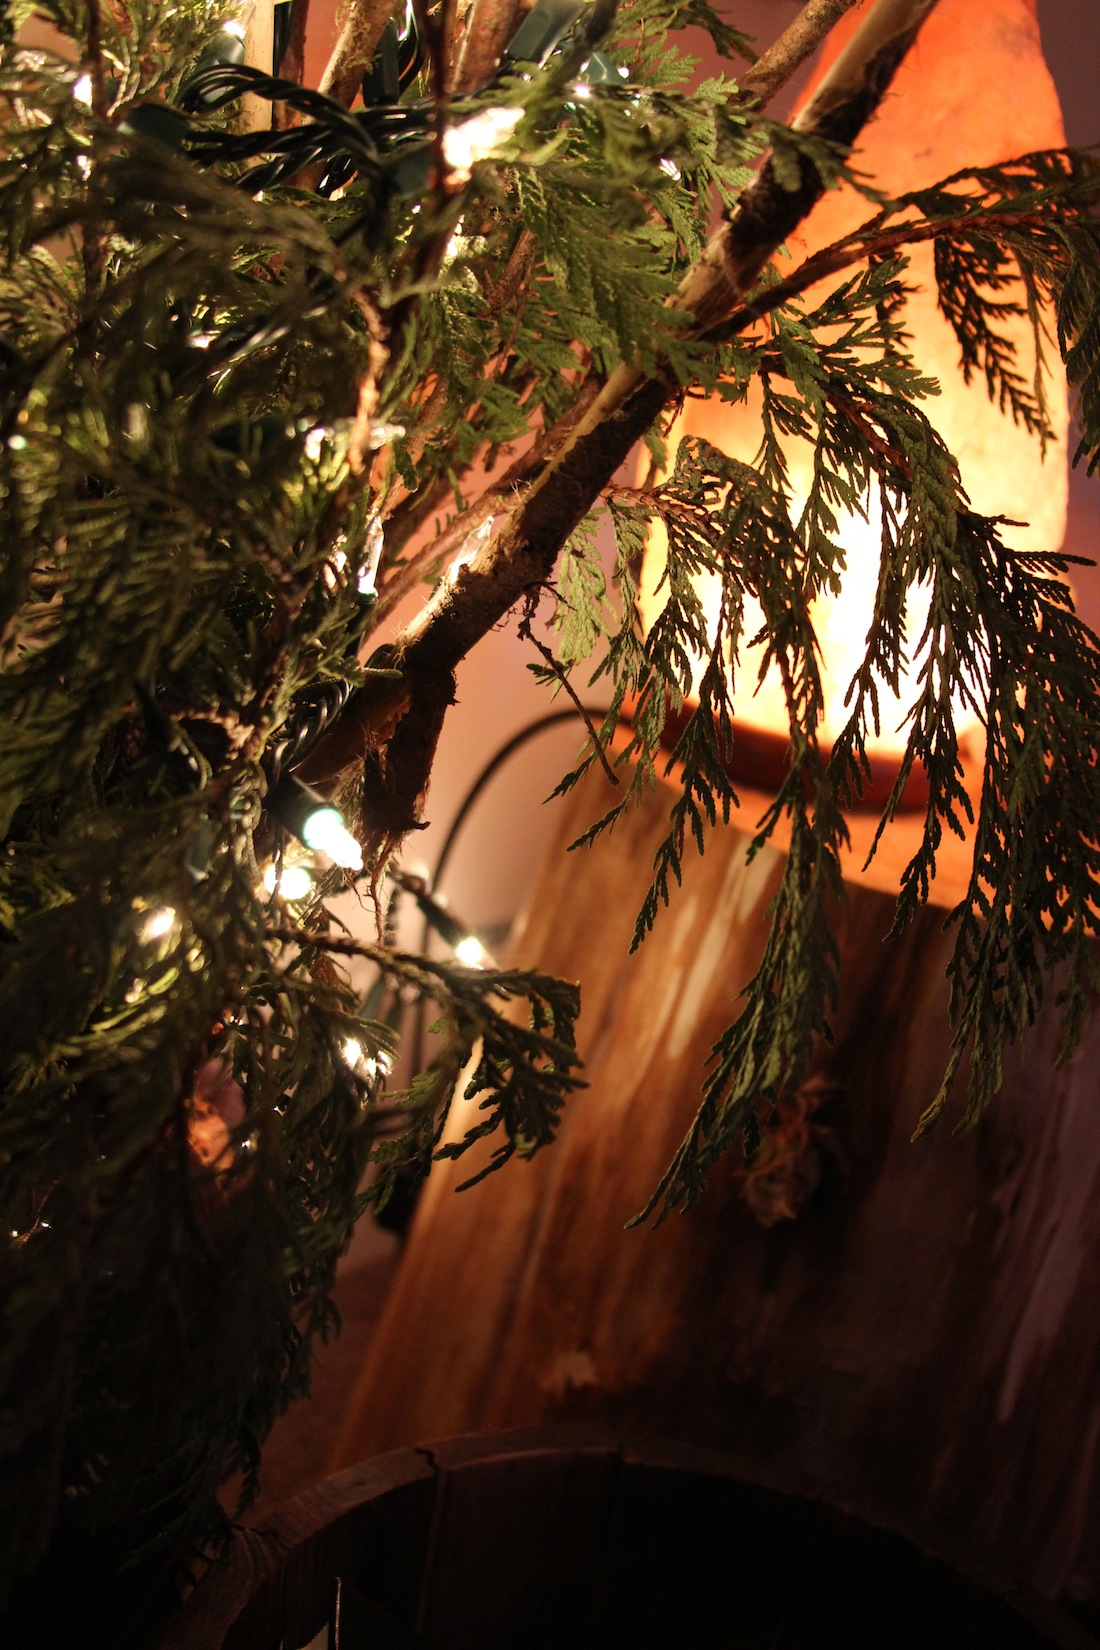 I wrapped twinkling lights around branches and cedar, and paired it with a salt lamp, for warm reading lights